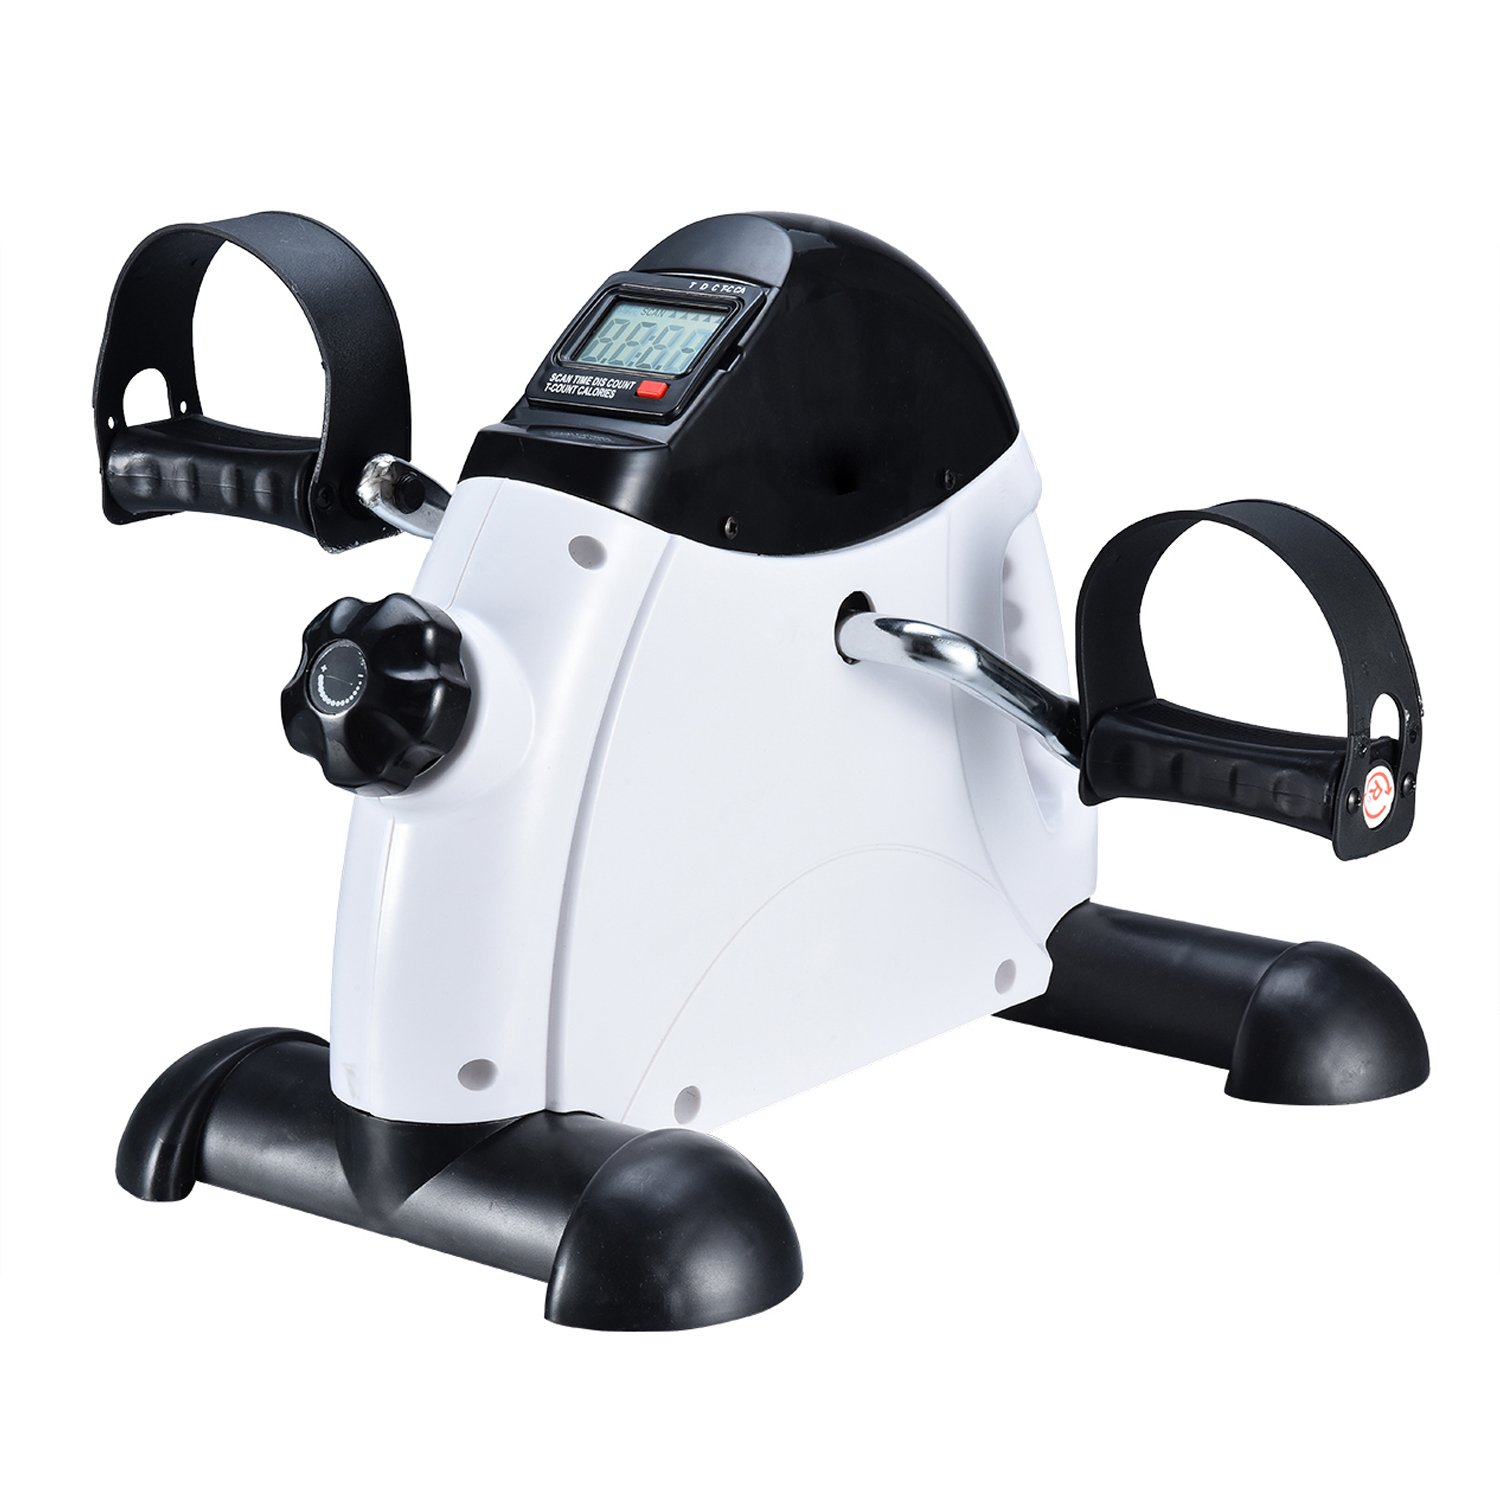 EXEFIT Mni Exercise Bike Pedal Exerciser Stationary Peddler with Digital LCD Monitor …